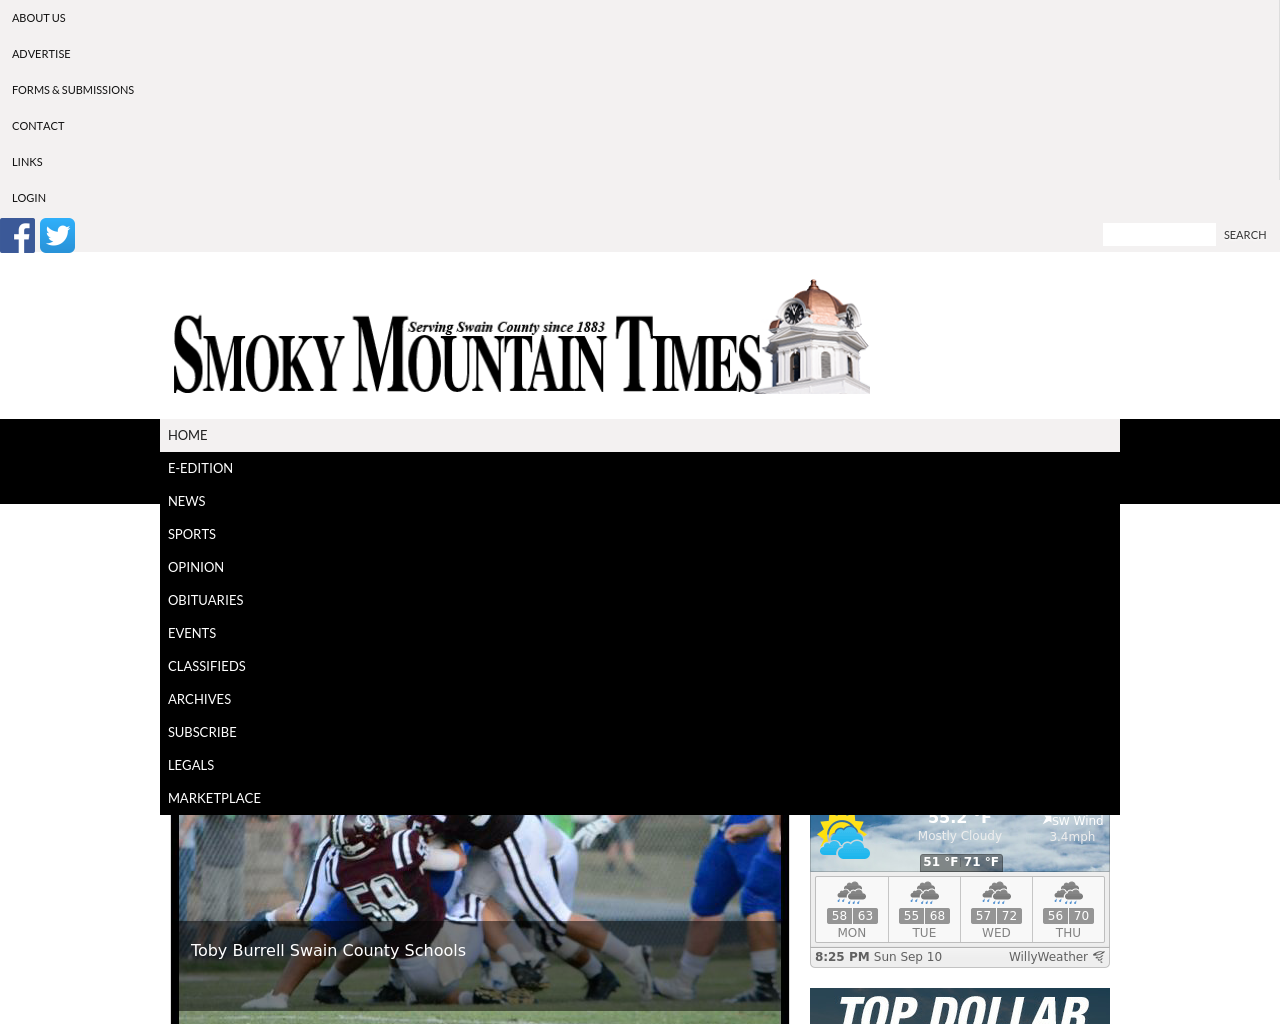 The-Smoky-Mountain-Times-Advertising-Reviews-Pricing